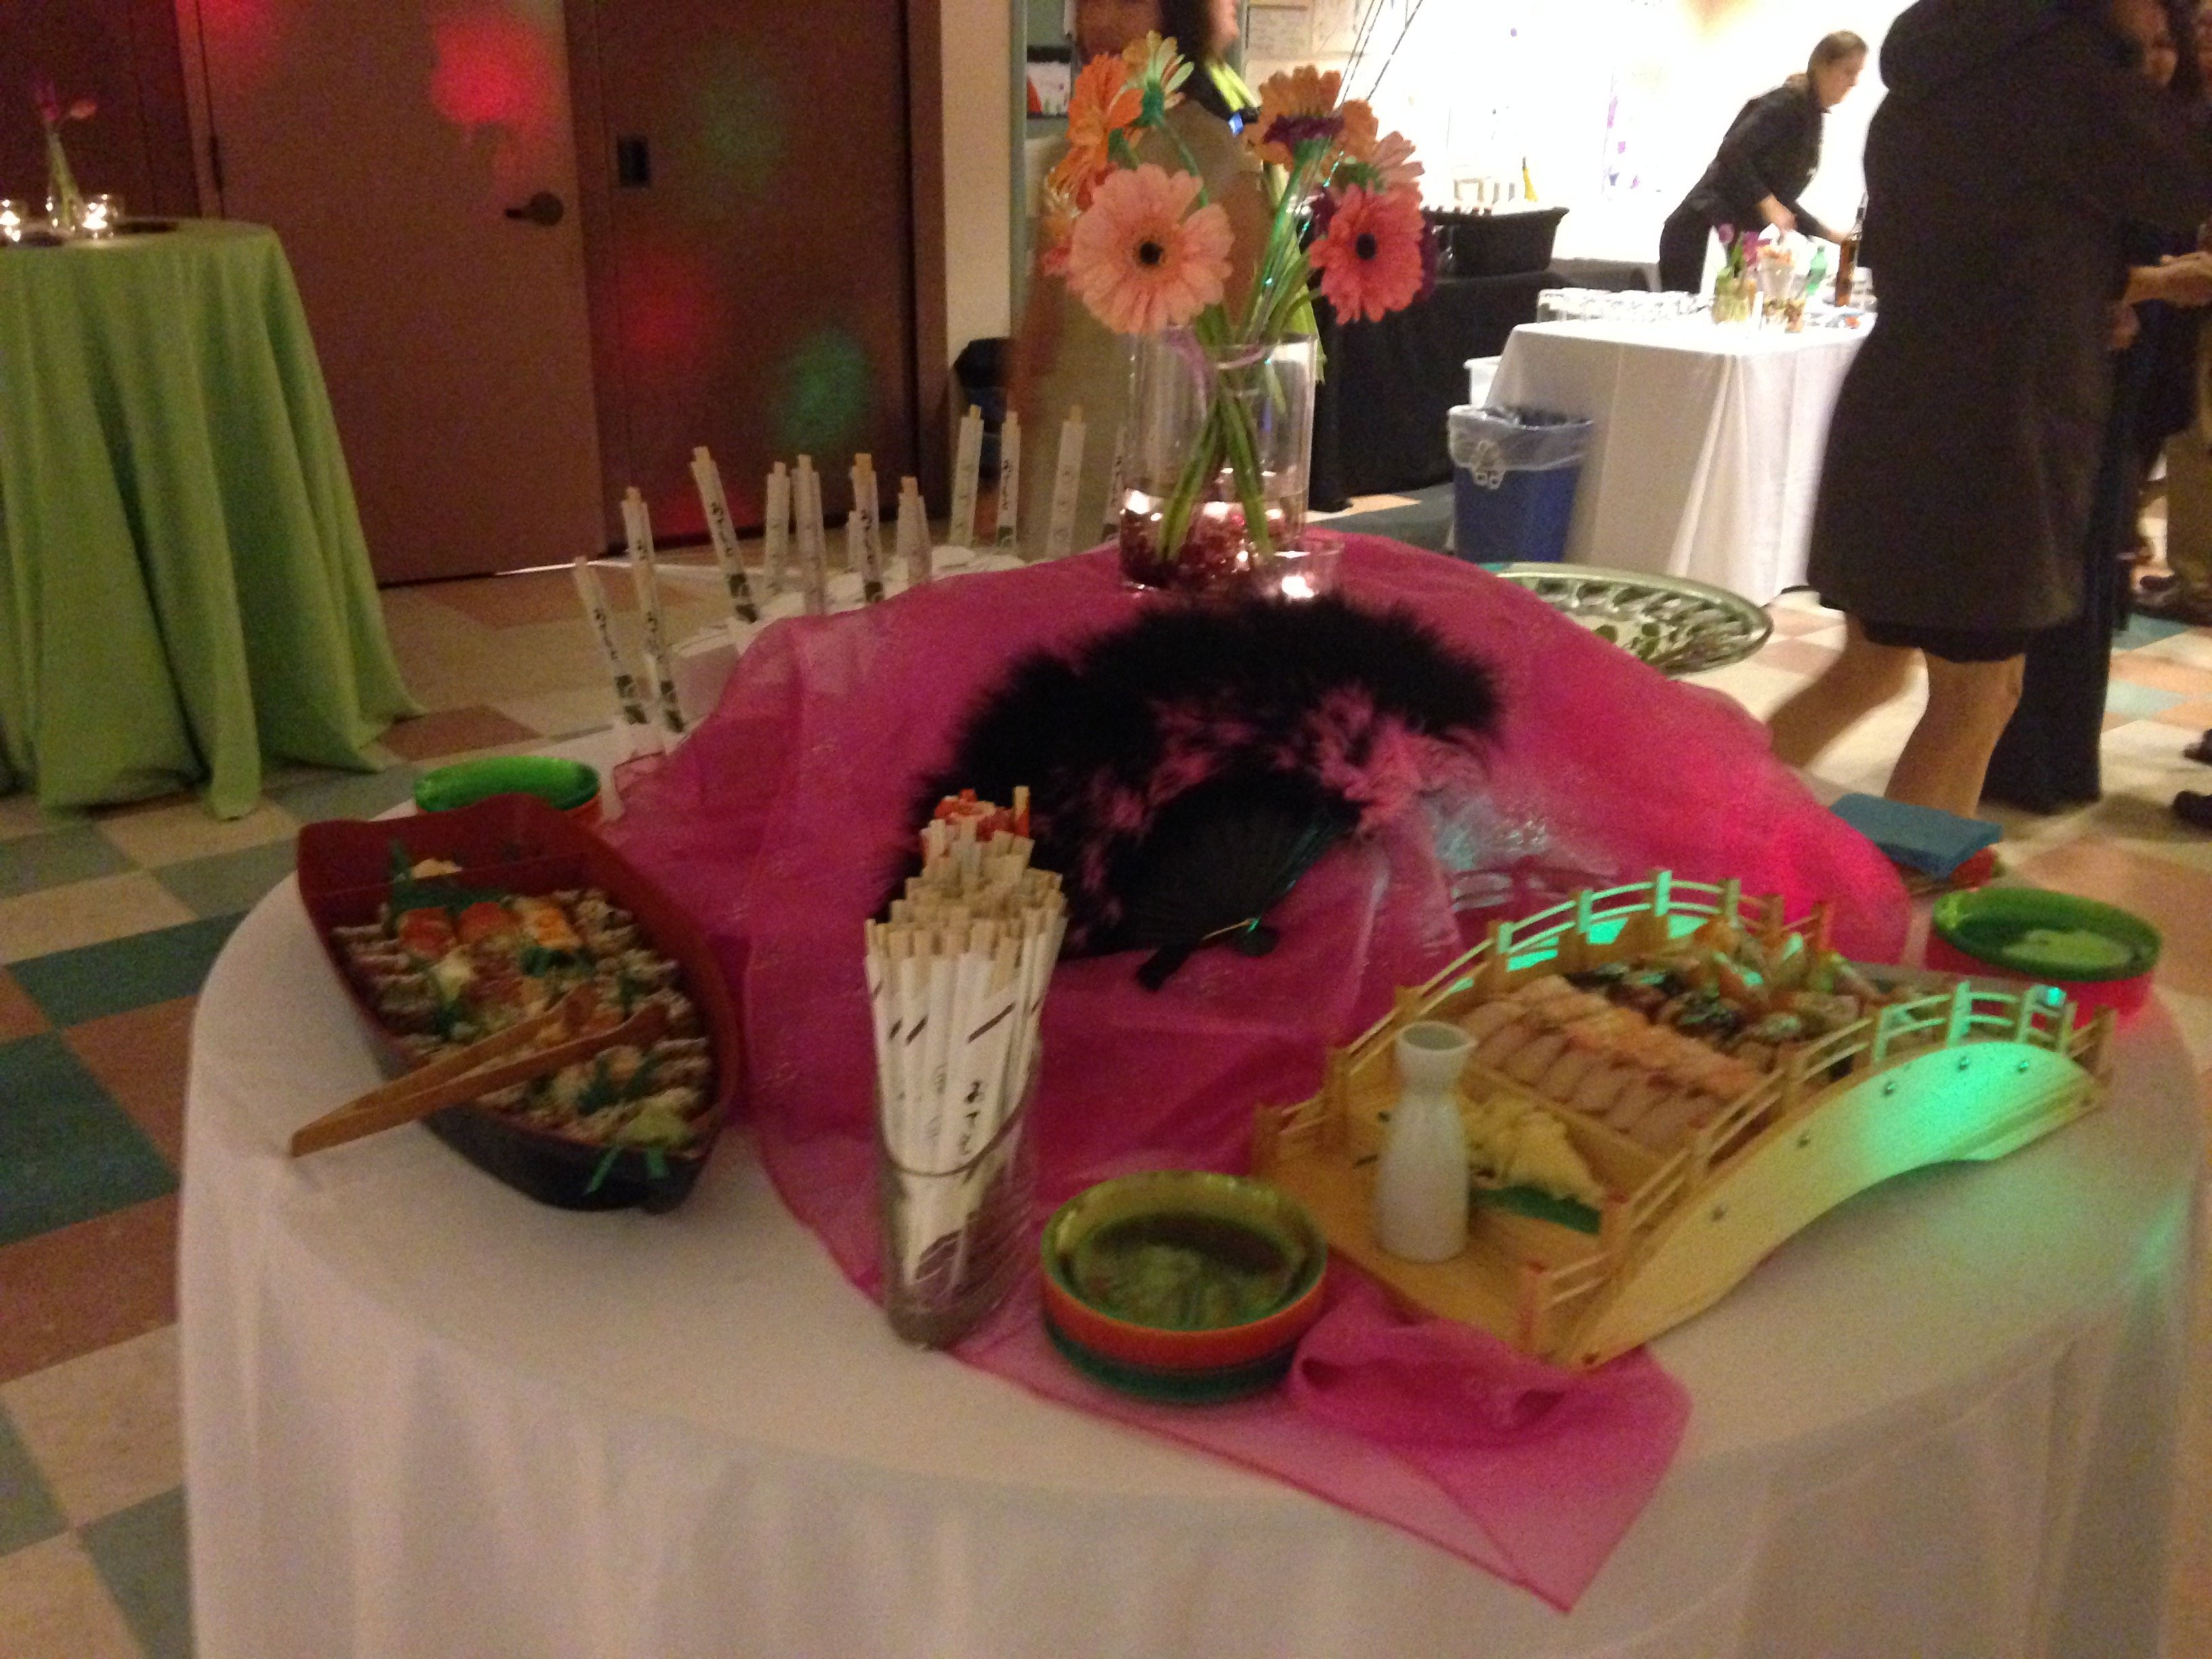 View of food served at an event